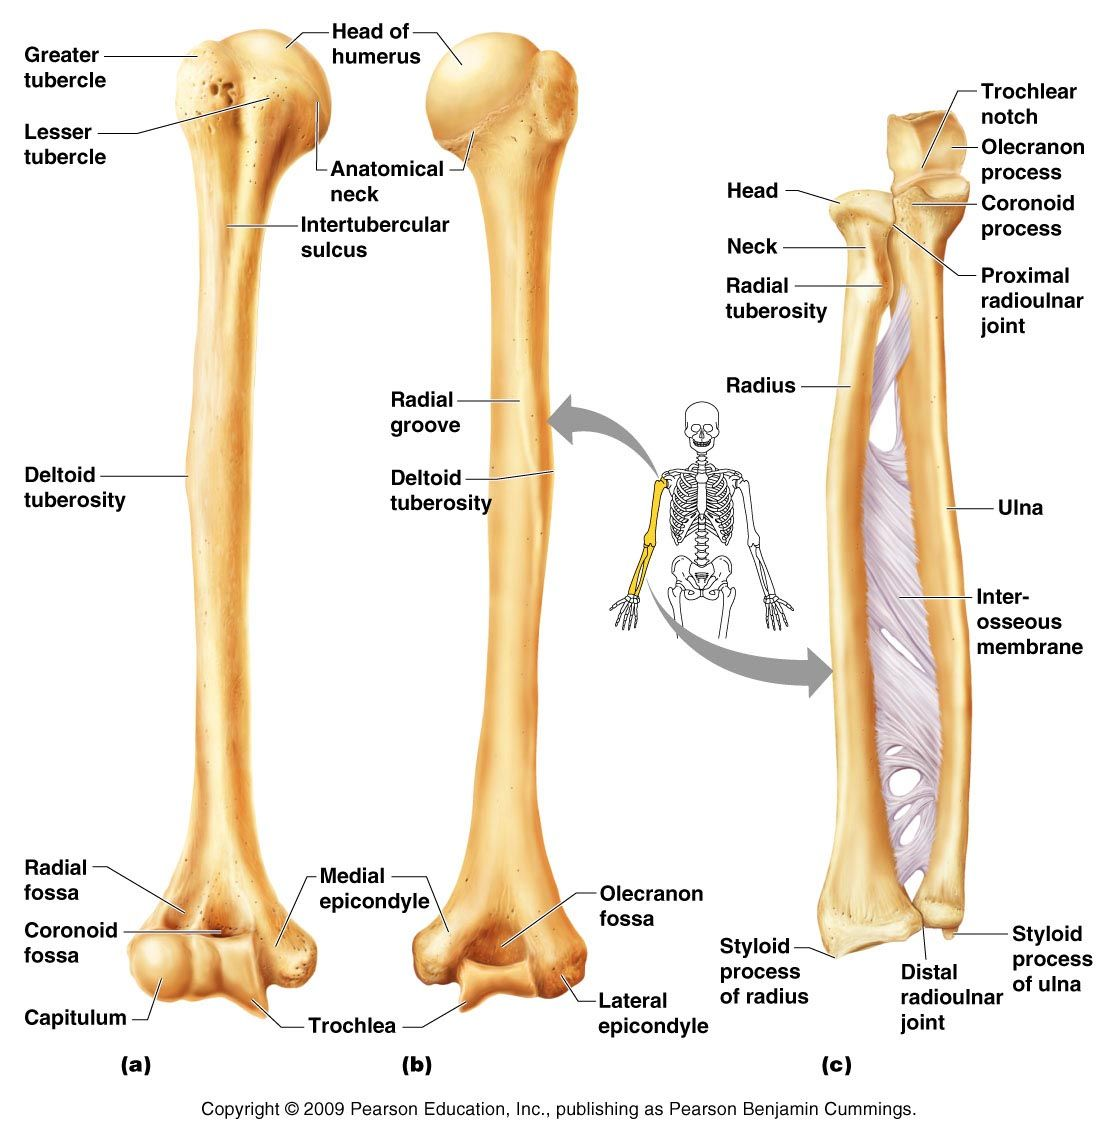 Humerus, Radius, Ulna | Anatomy & Physiology | Pinterest | Anatomy ...